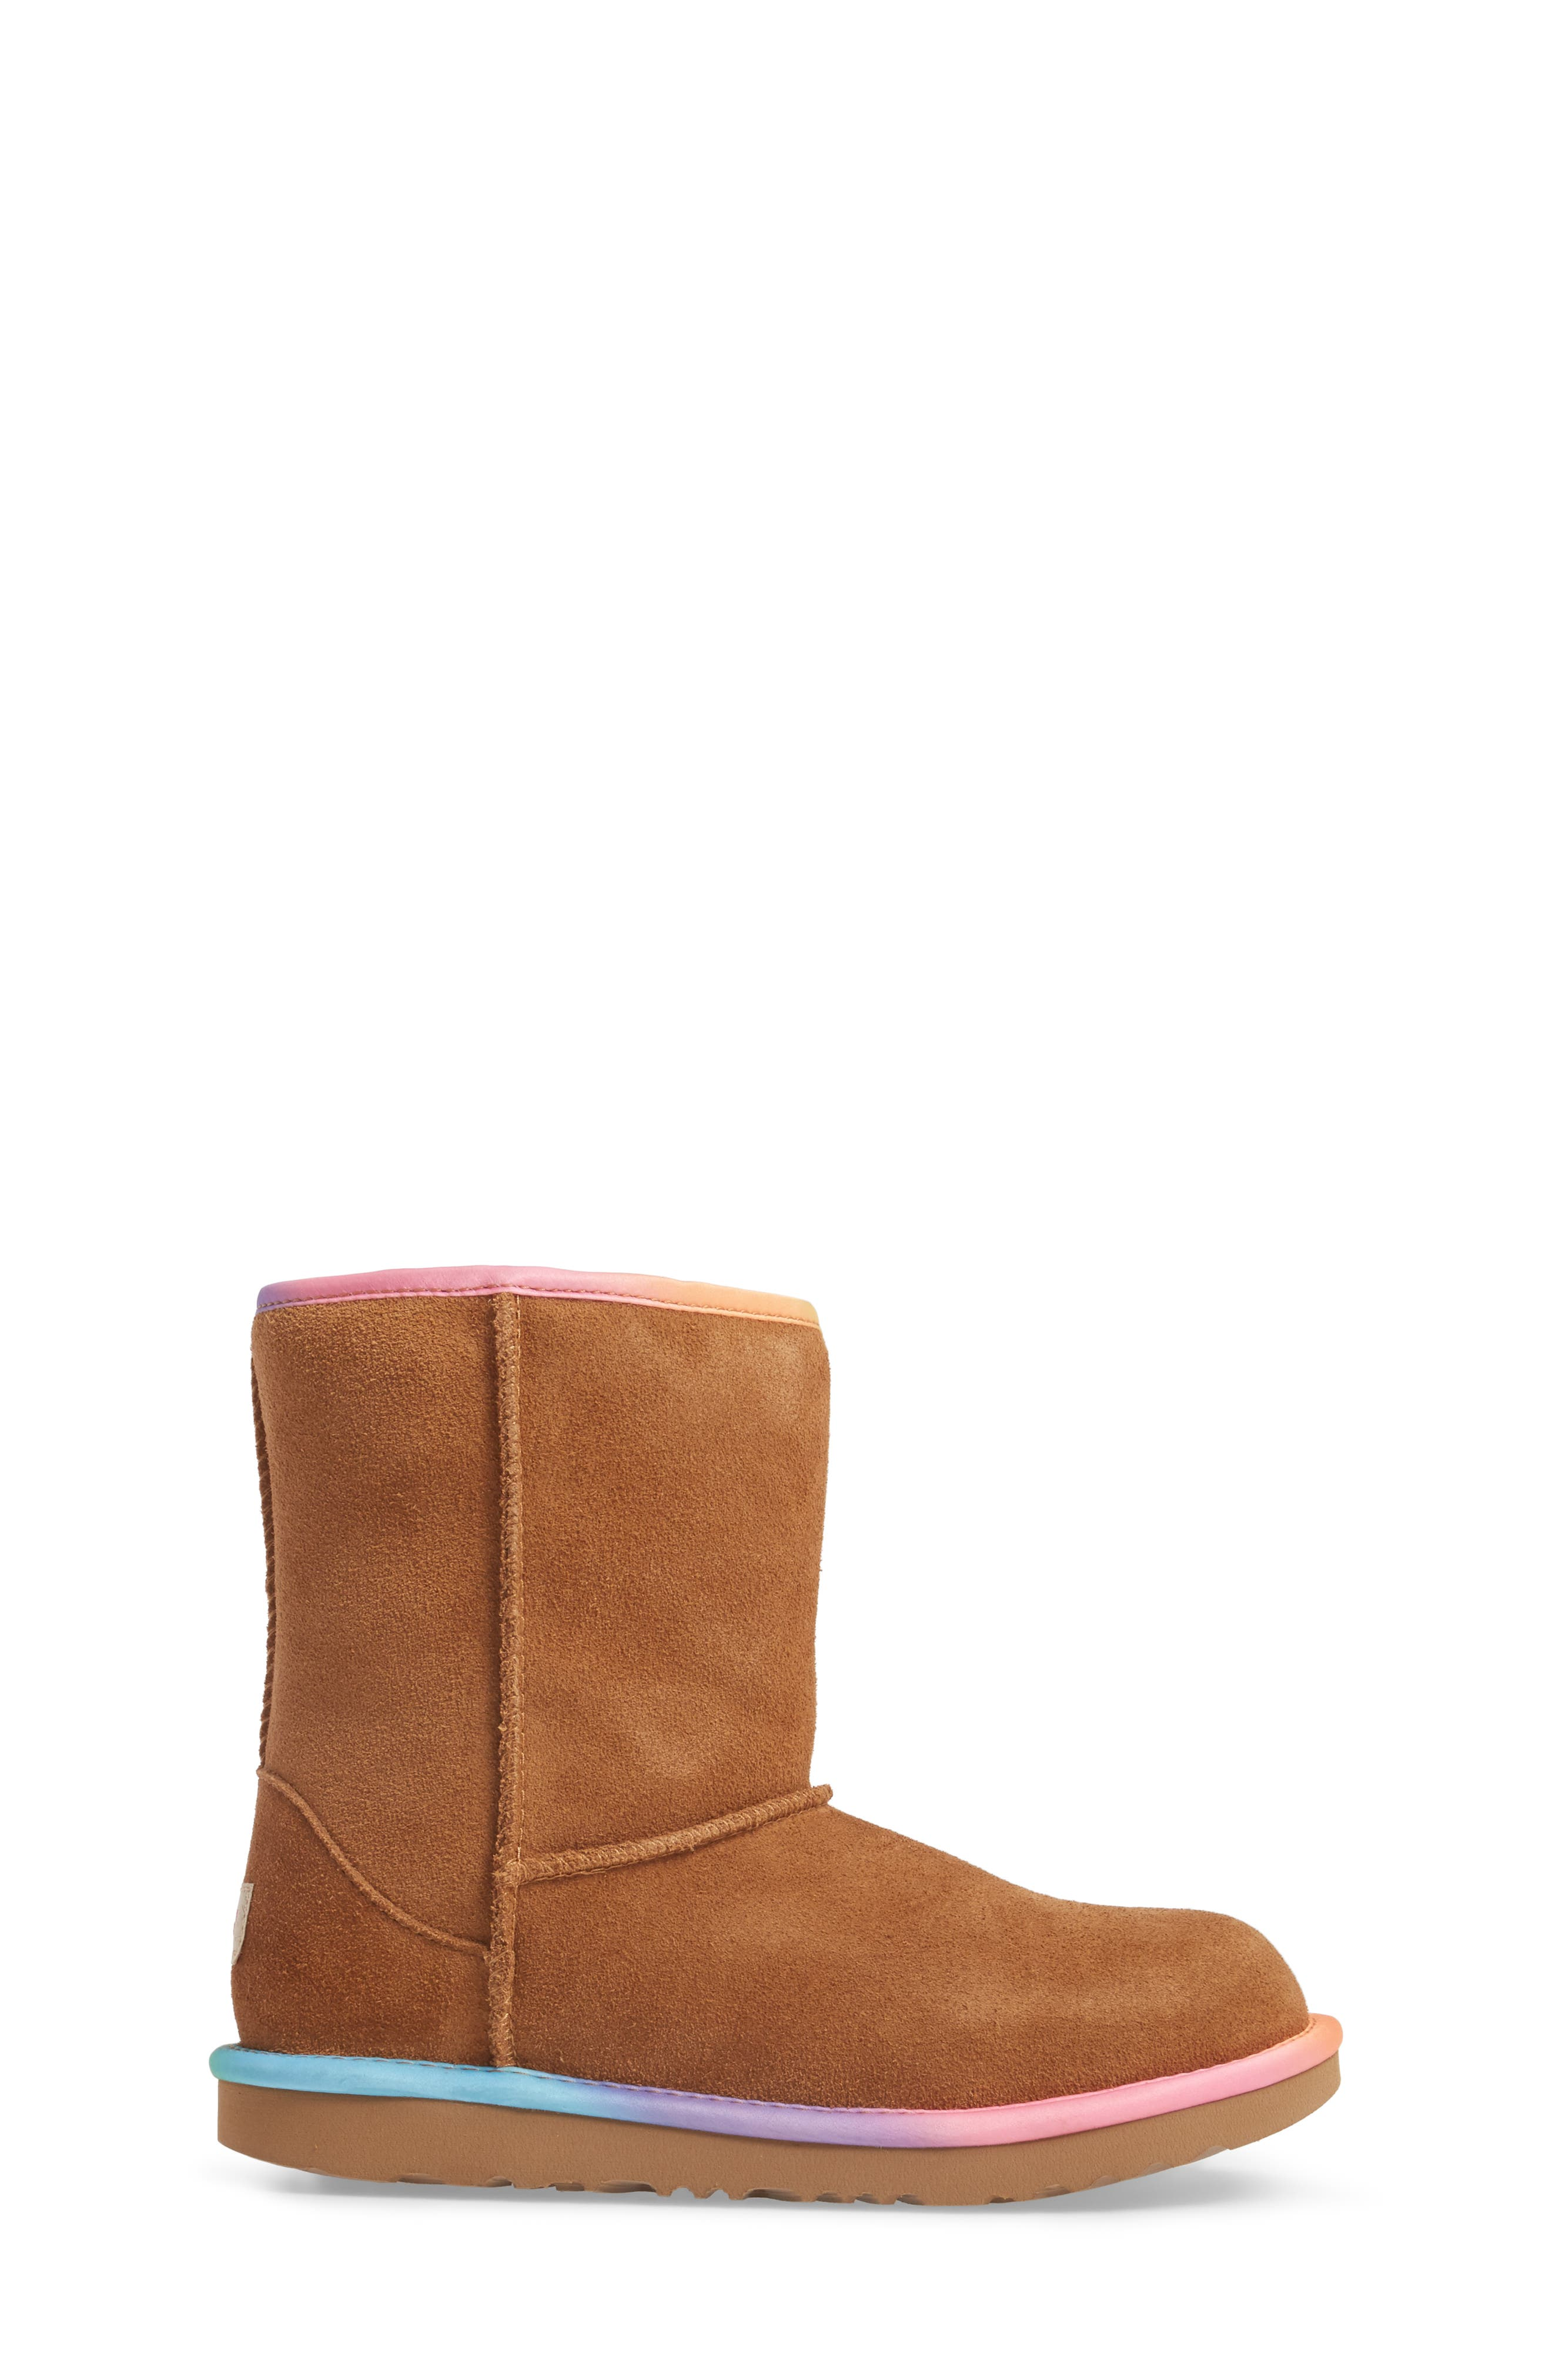 Classic Short II Water-Resistant Genuine Shearling Rainbow Boot,                             Alternate thumbnail 5, color,